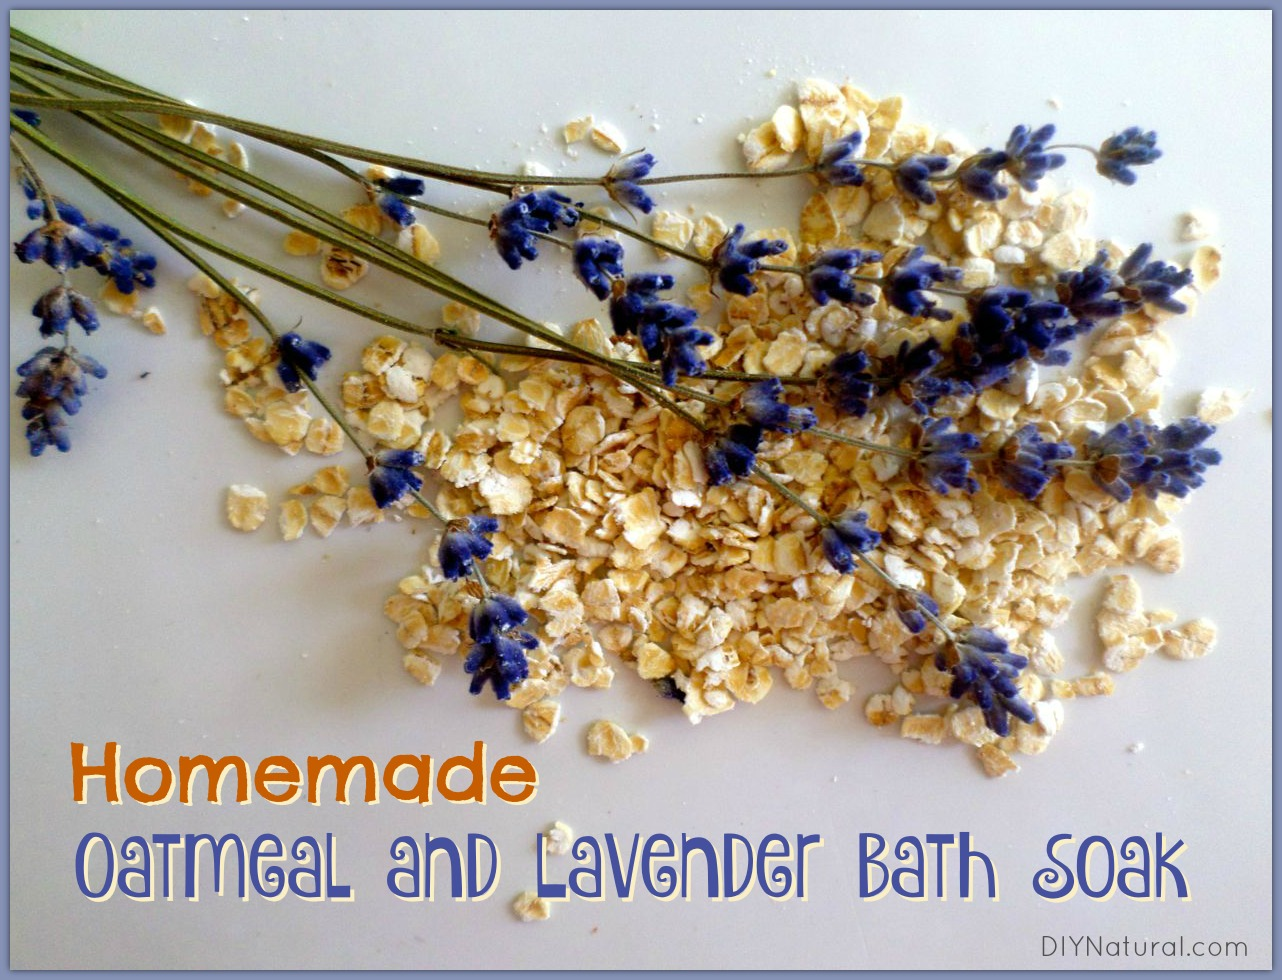 Homemade Oatmeal Bath Soak (with Lavender) for Dry Skin